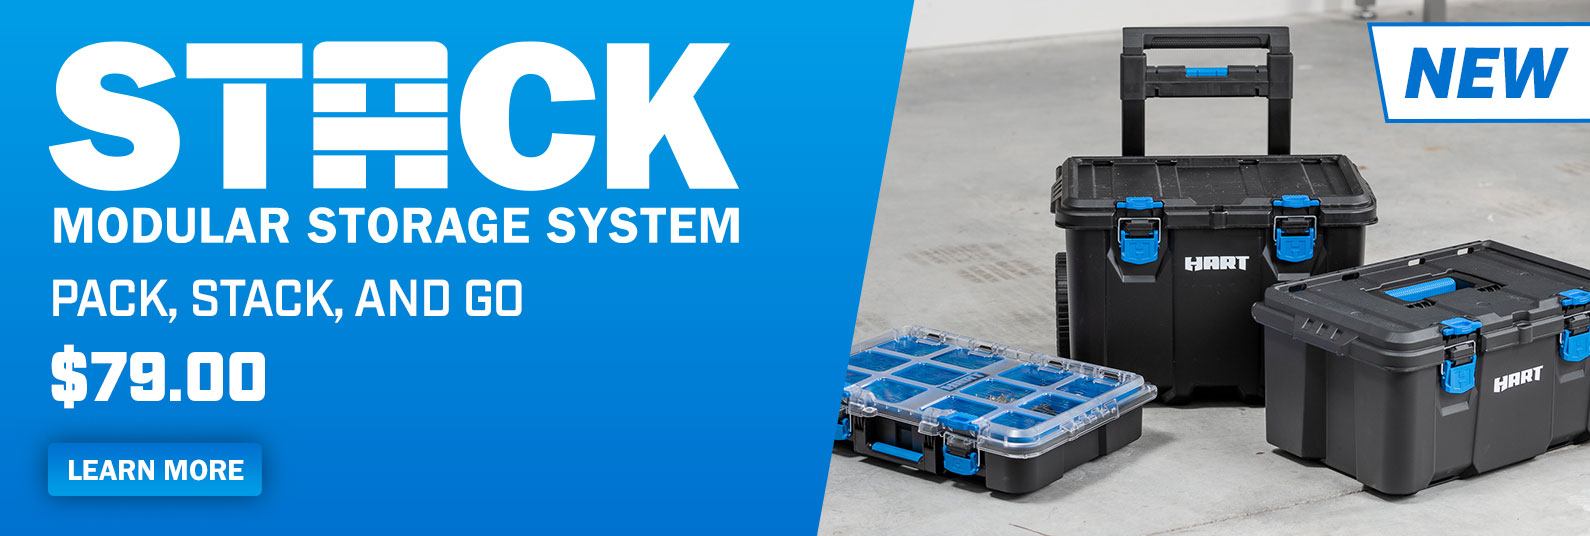 Pack, stack, and go with the new Stack Modular Storage System from HART; only at Walmart.